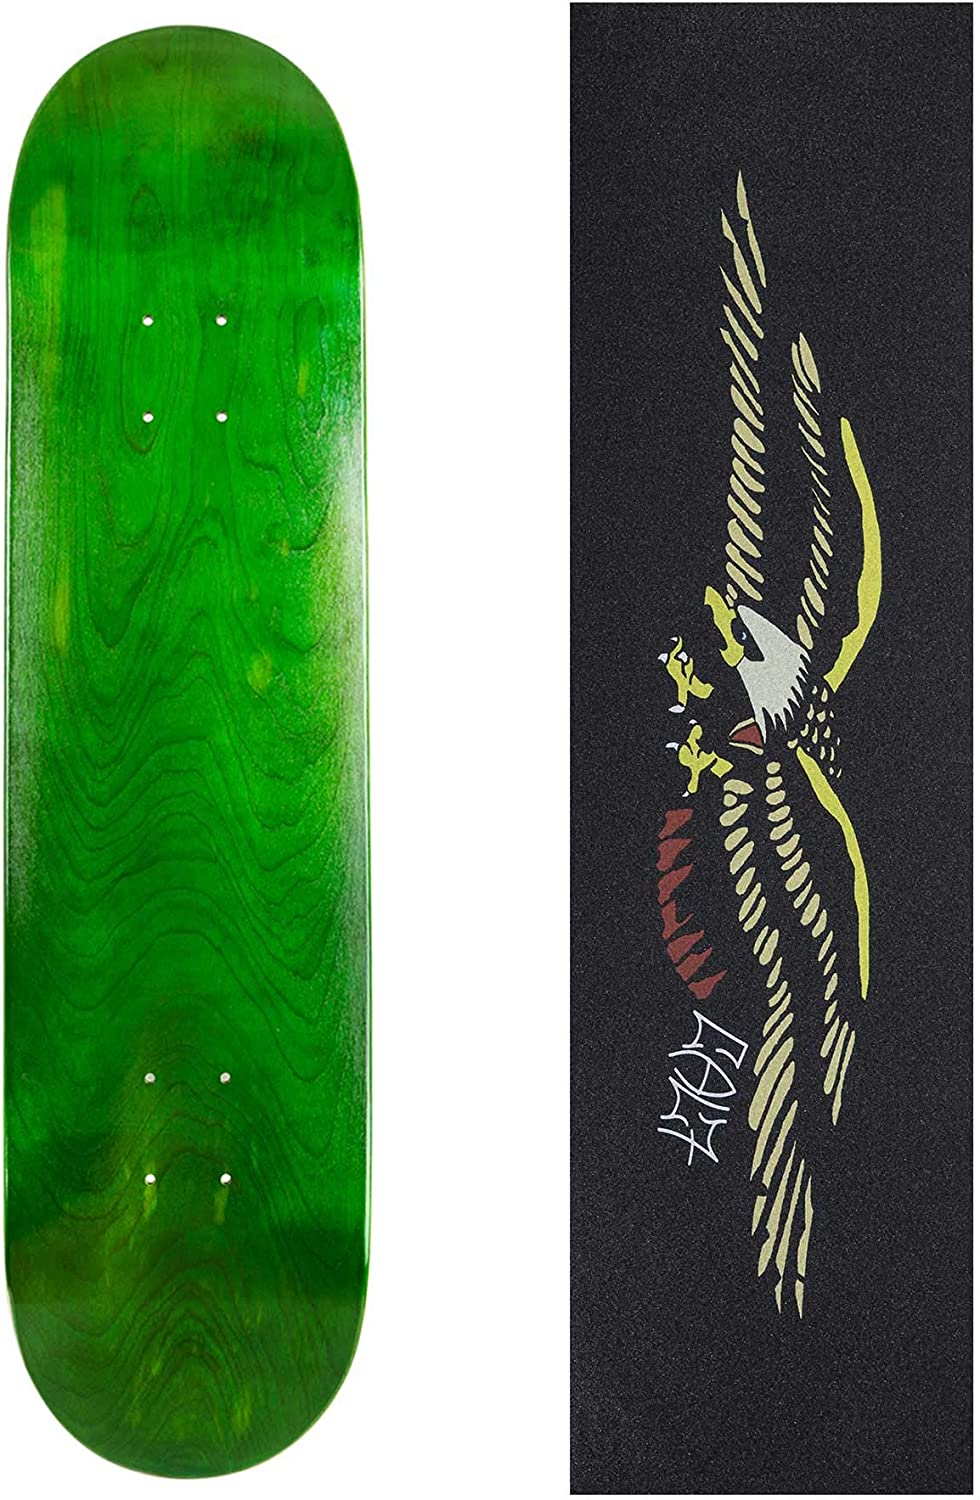 Cal 7 Blank Skateboard Deck with Mob Green Glitter Grip Tape 7.75 8.25 and 8.5 Inch 8.0 Maple Board for Skating